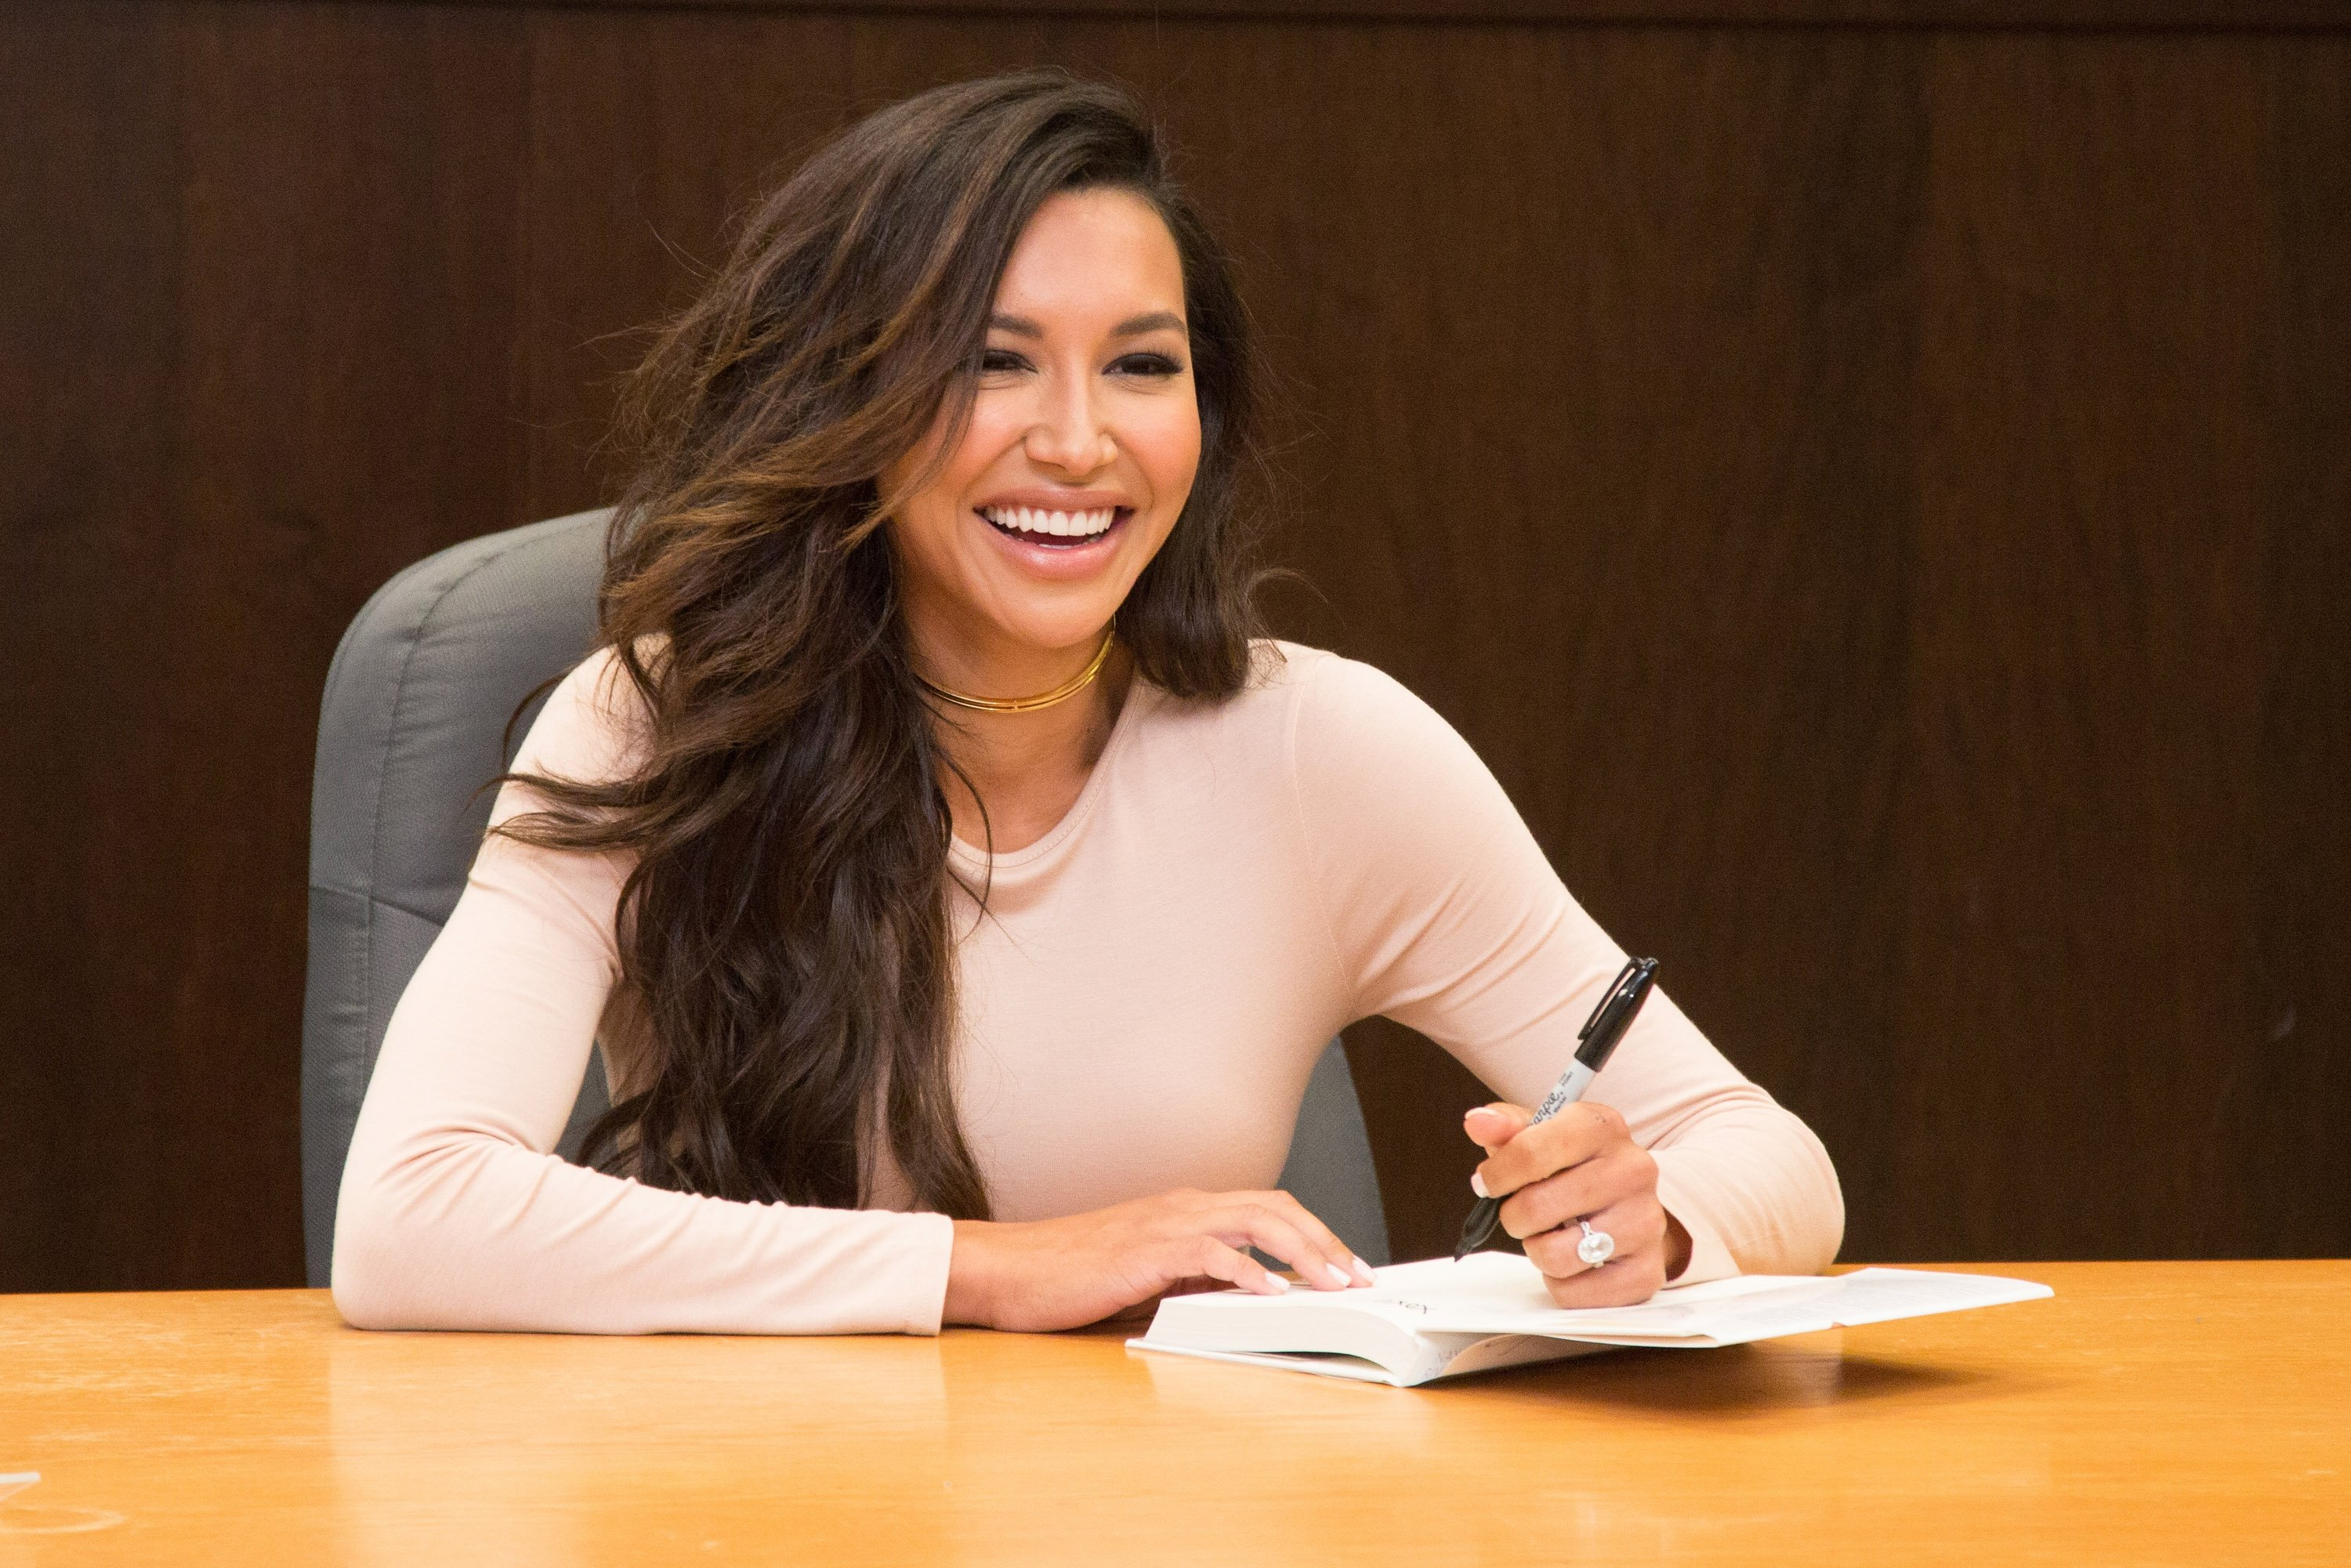 """Naya Rivera pictured her book signing for """"Sorry Not Sorry."""" 2016, California.   Photo: Getty Images"""